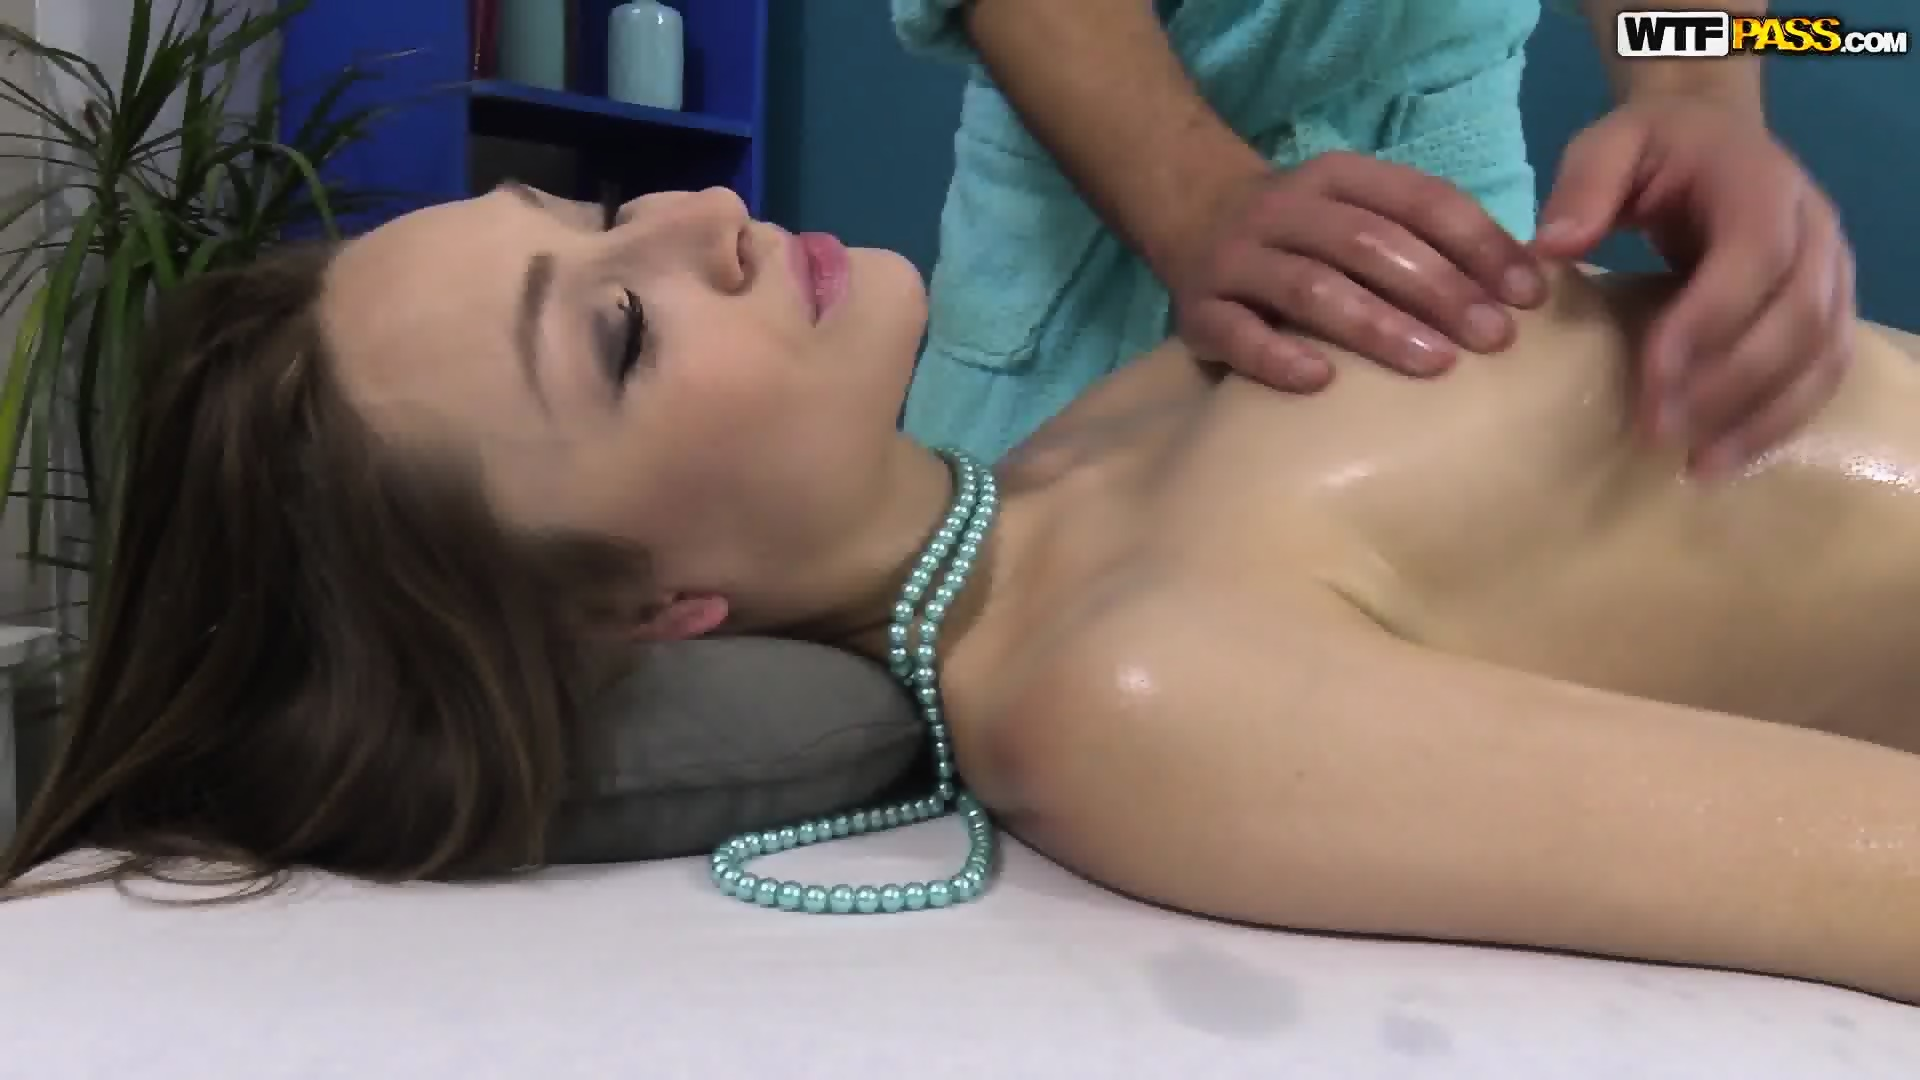 Sensual Massage Turns Into Nice Sex Scene 6